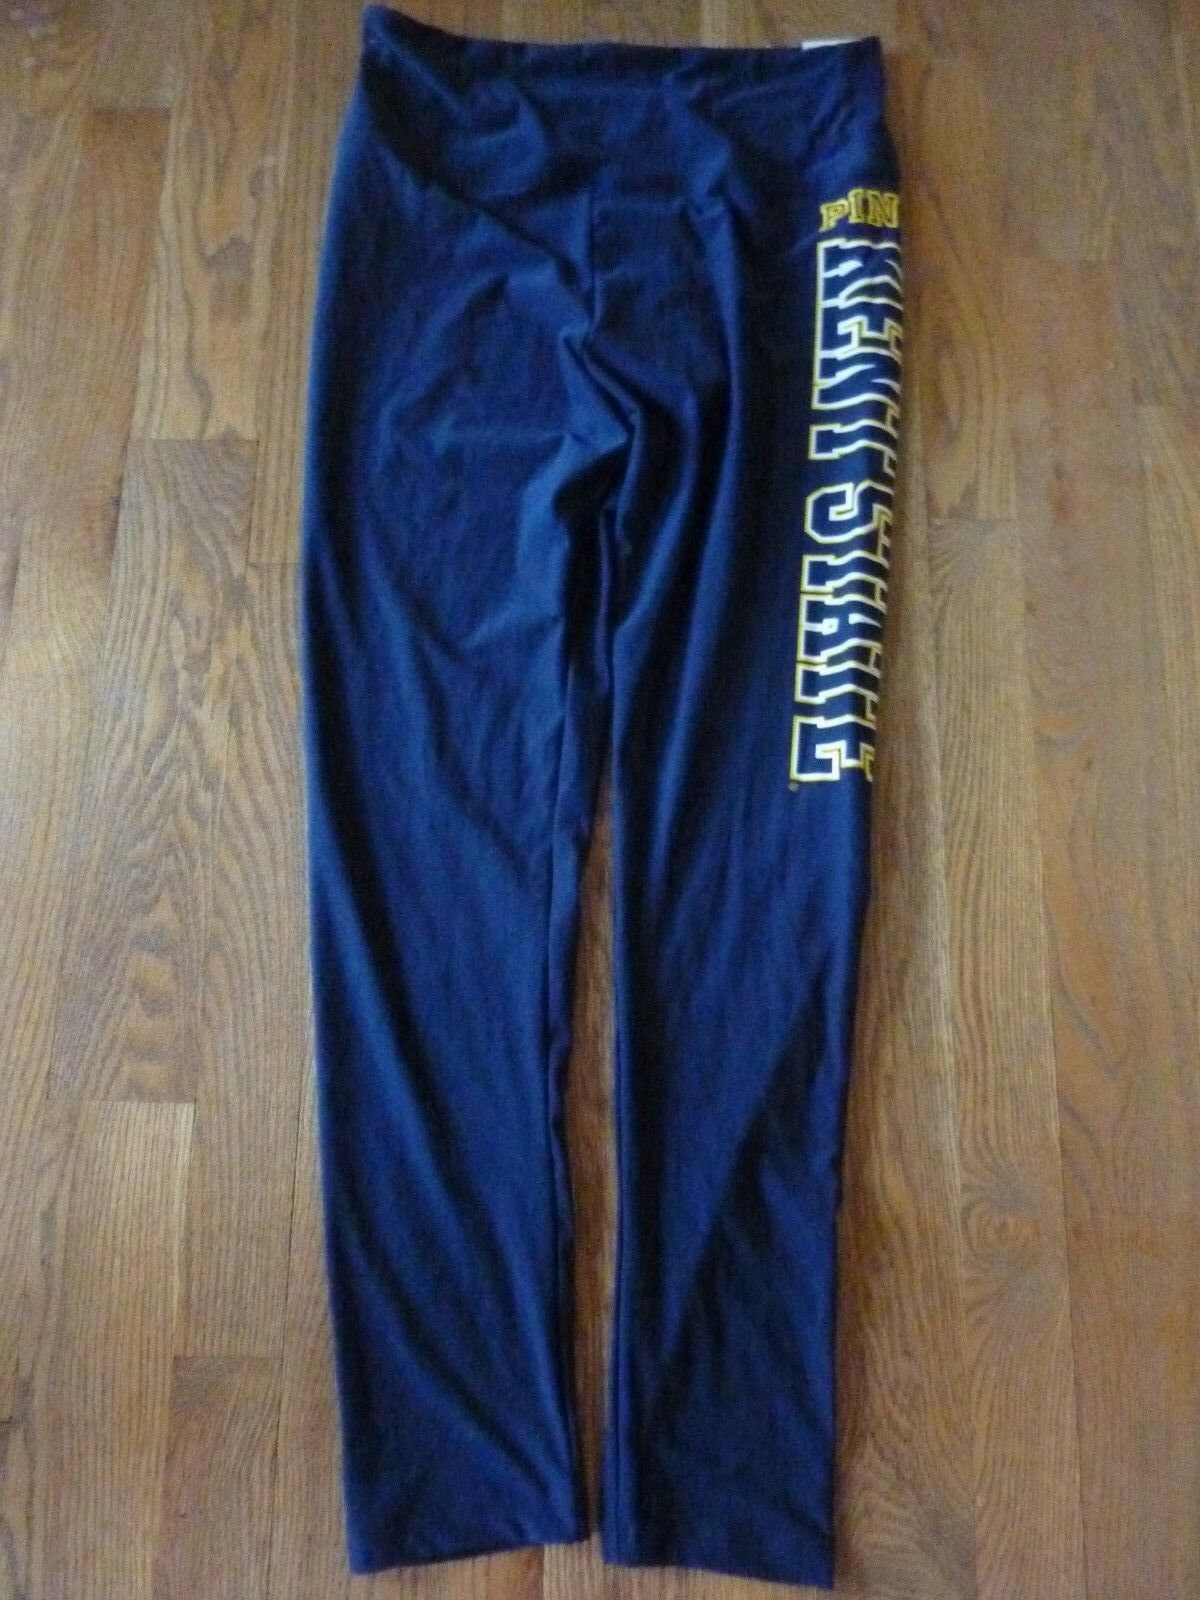 VICTORIAS SECRET PINK RARE SUPER SOFT KENT STATE ULTIMATE YOGA LEGGINGS NWT